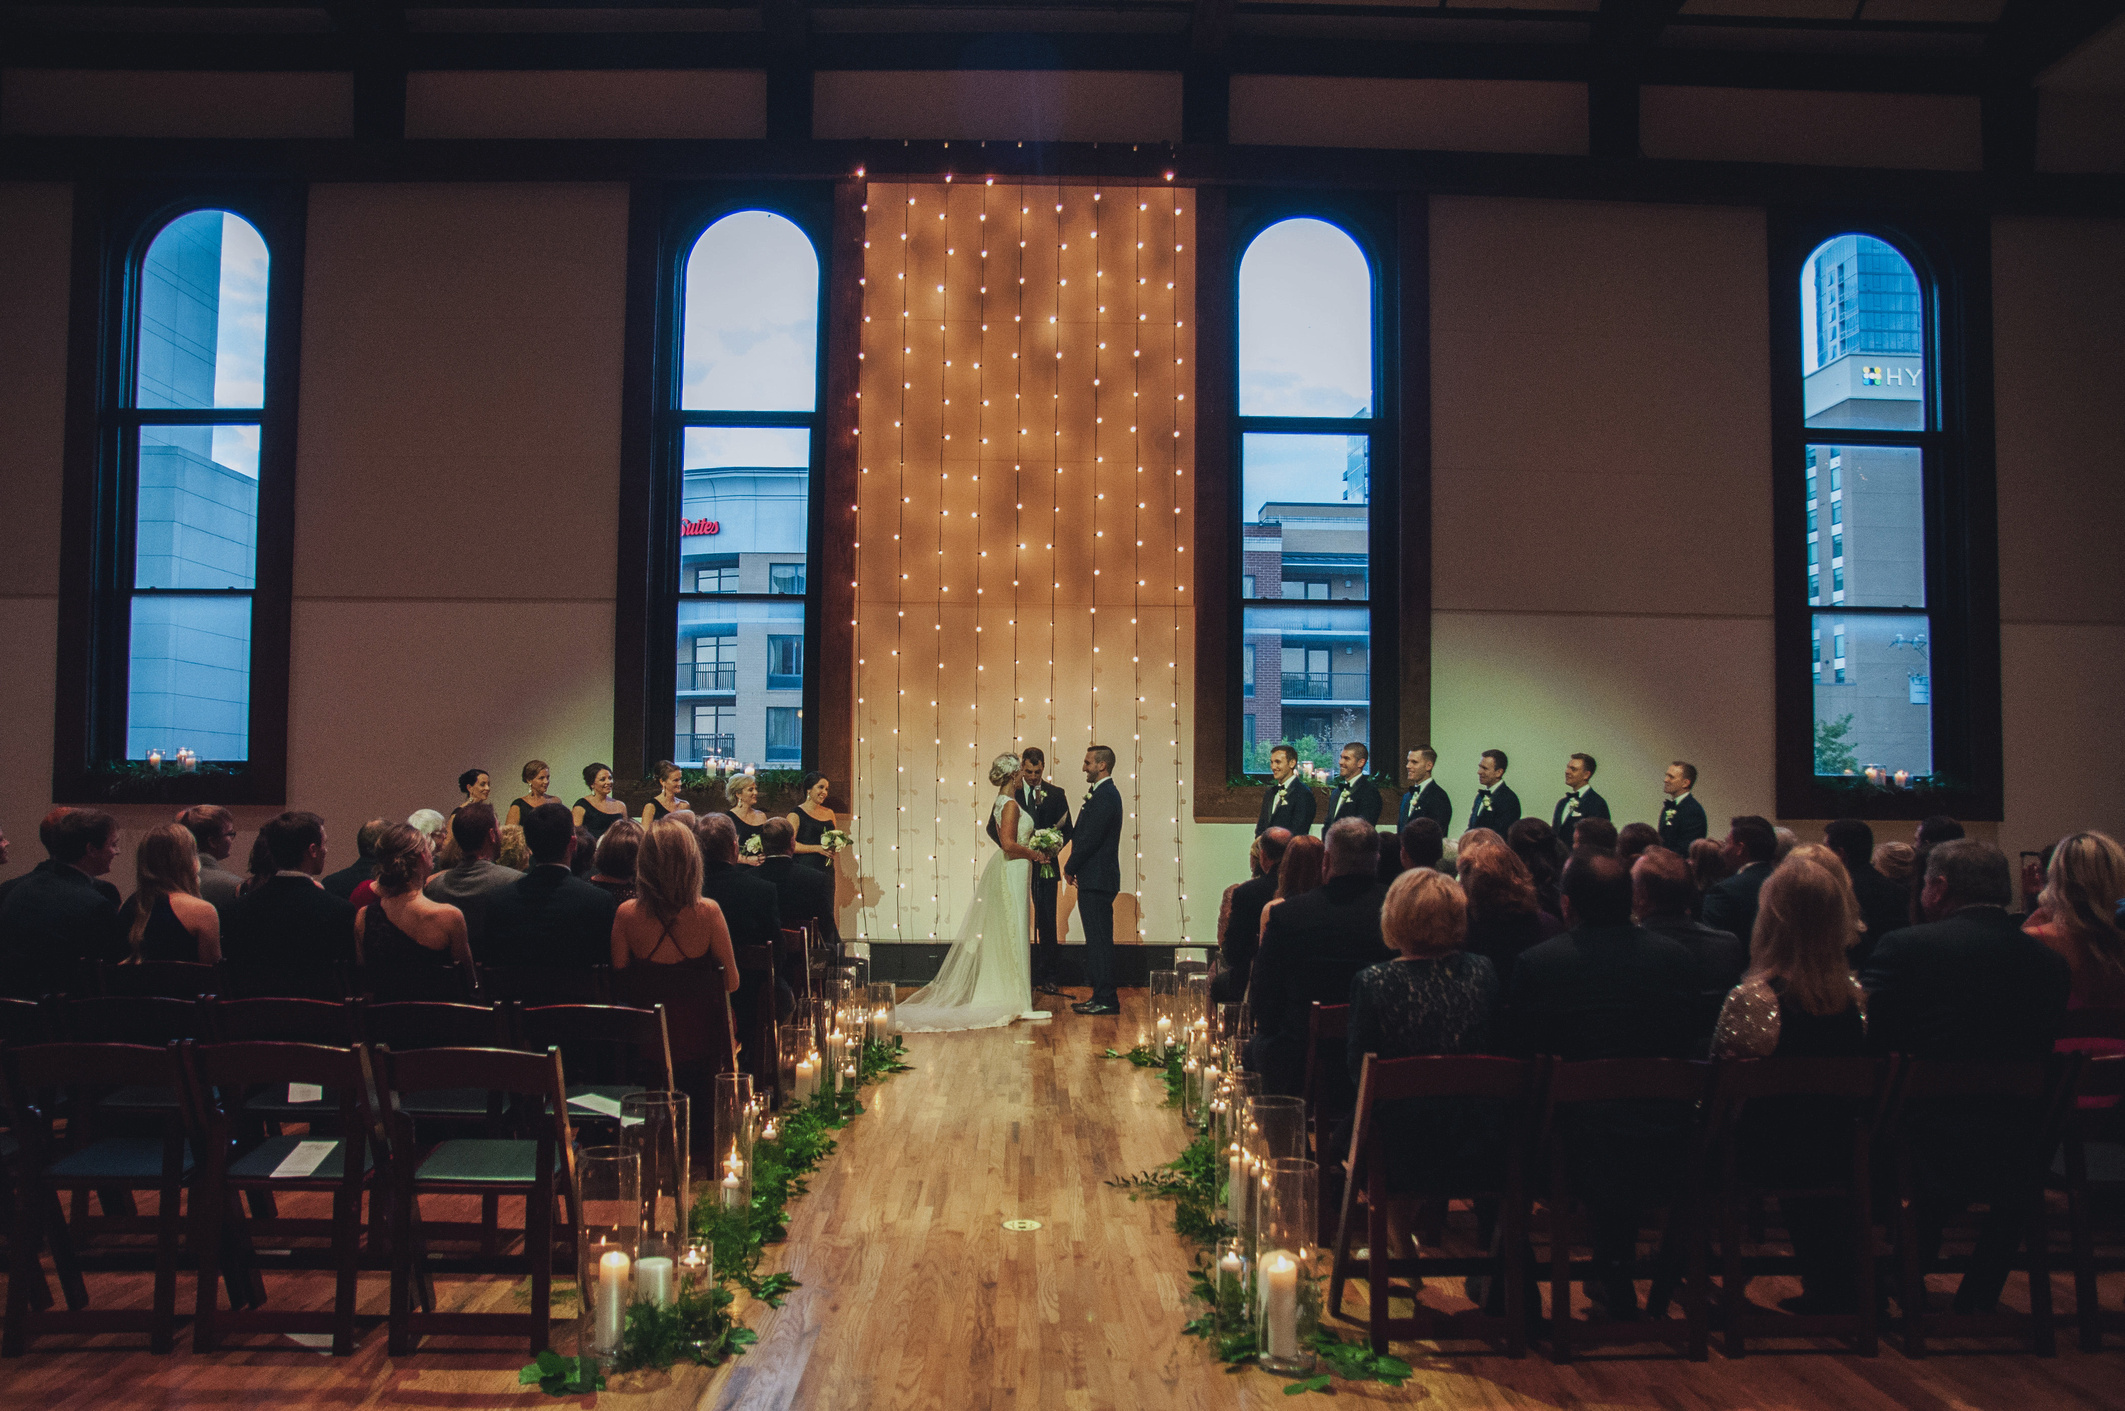 Natalie and Tyler's Fall Wedding at The Bell Tower